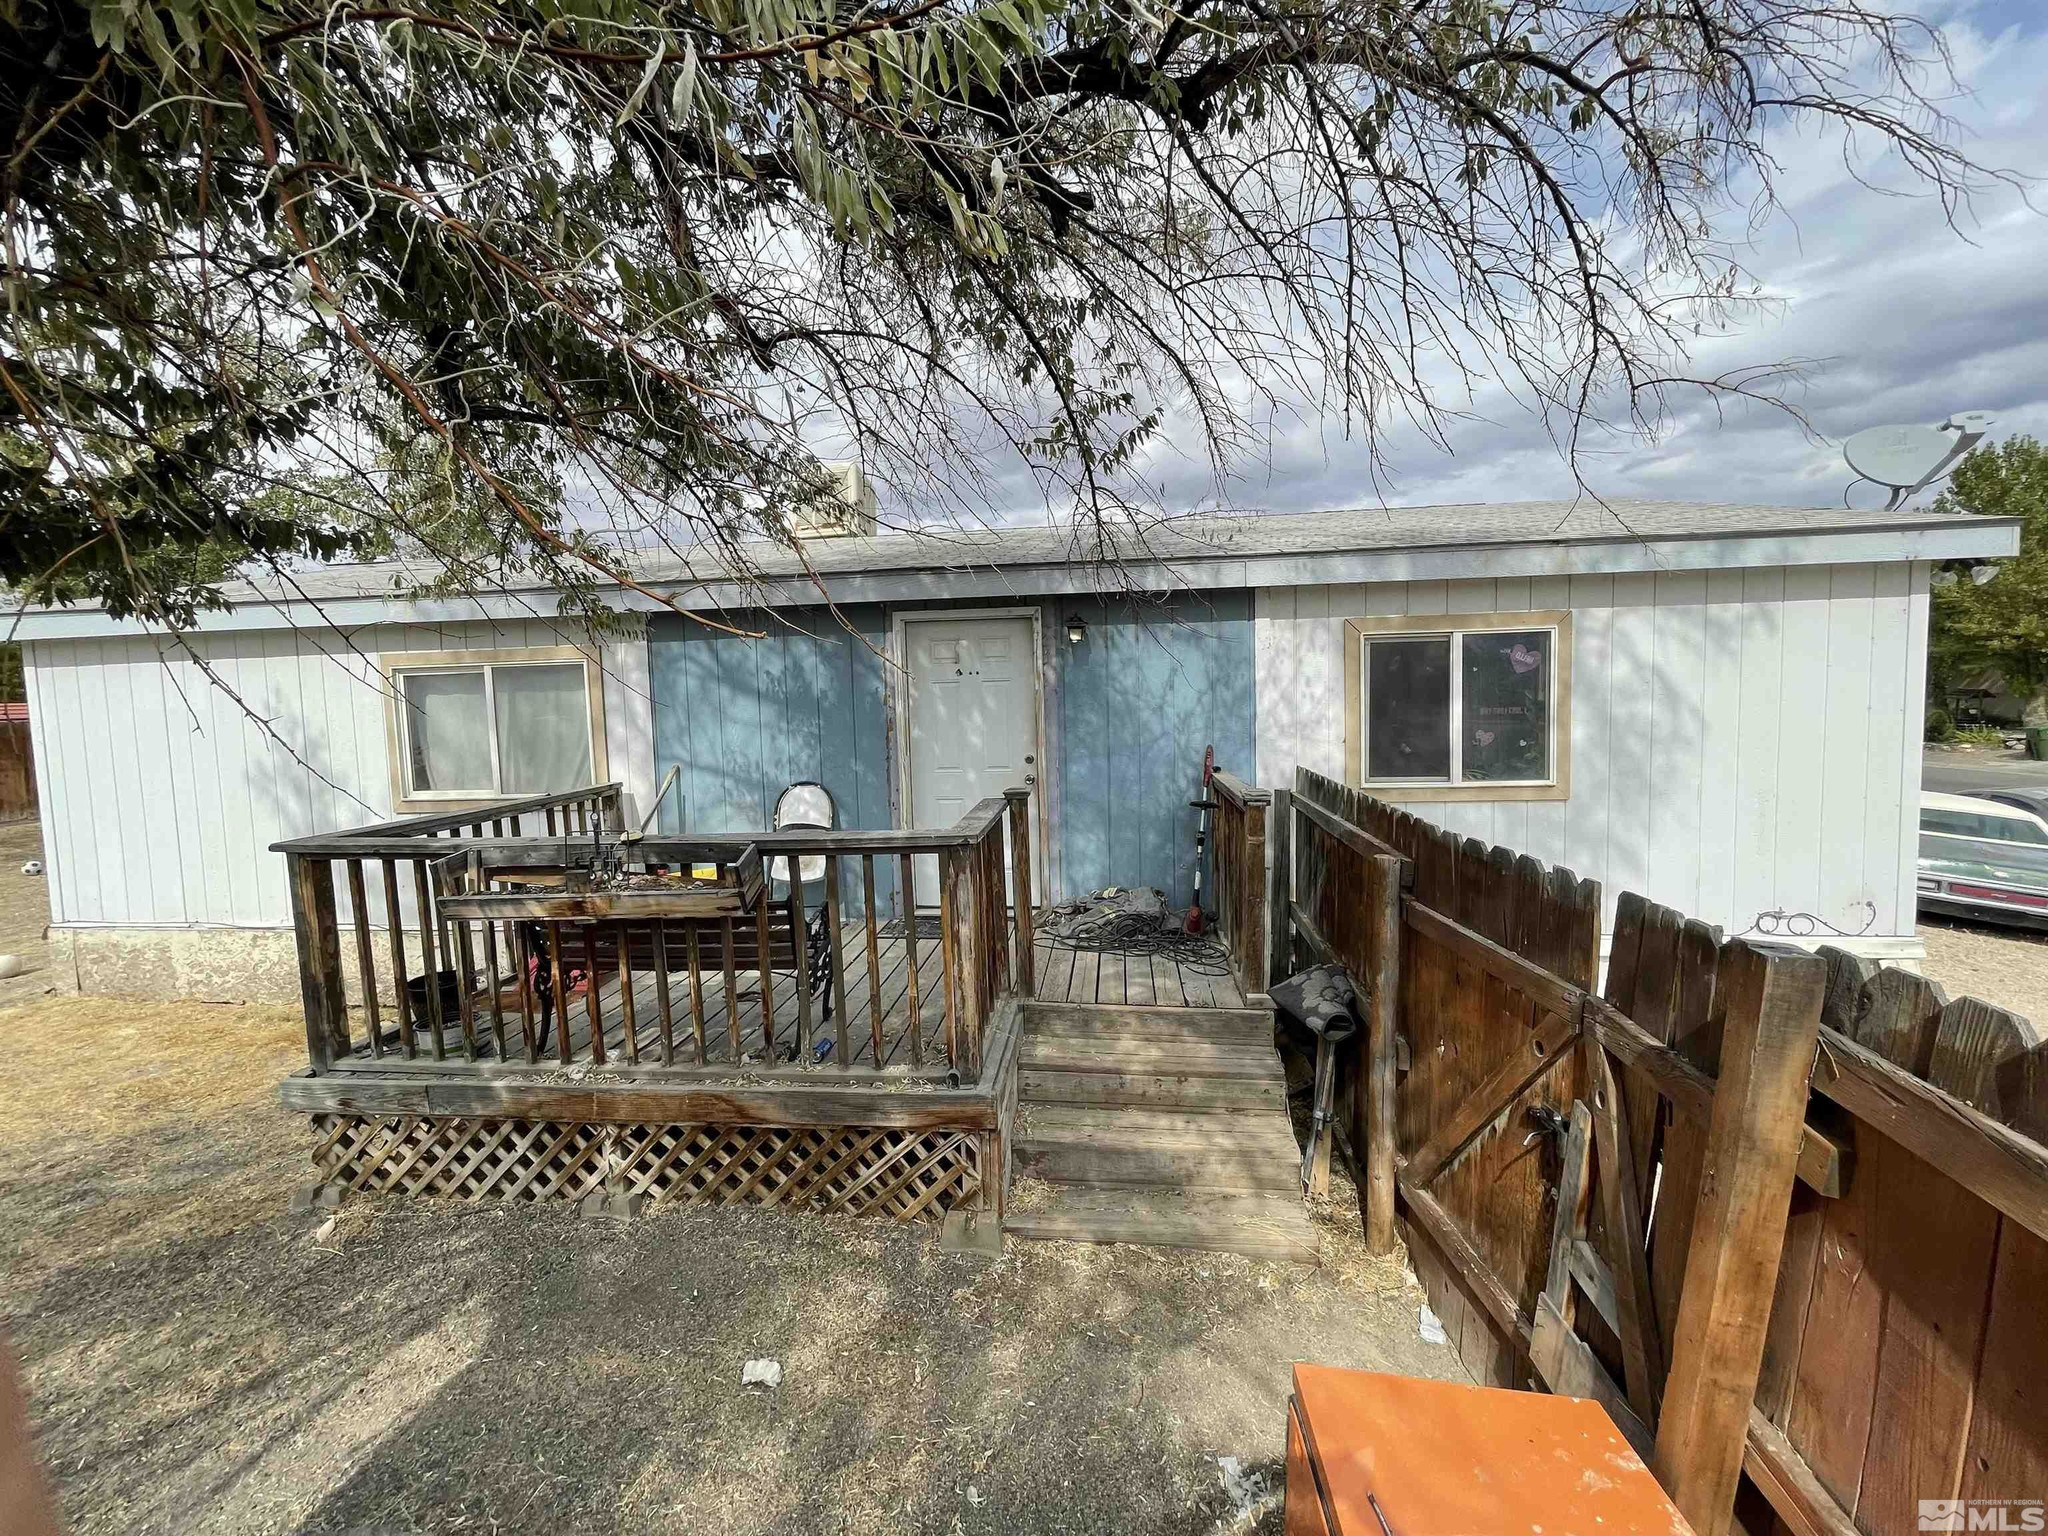 2-Bedroom Mobile Home In Battle Mountain